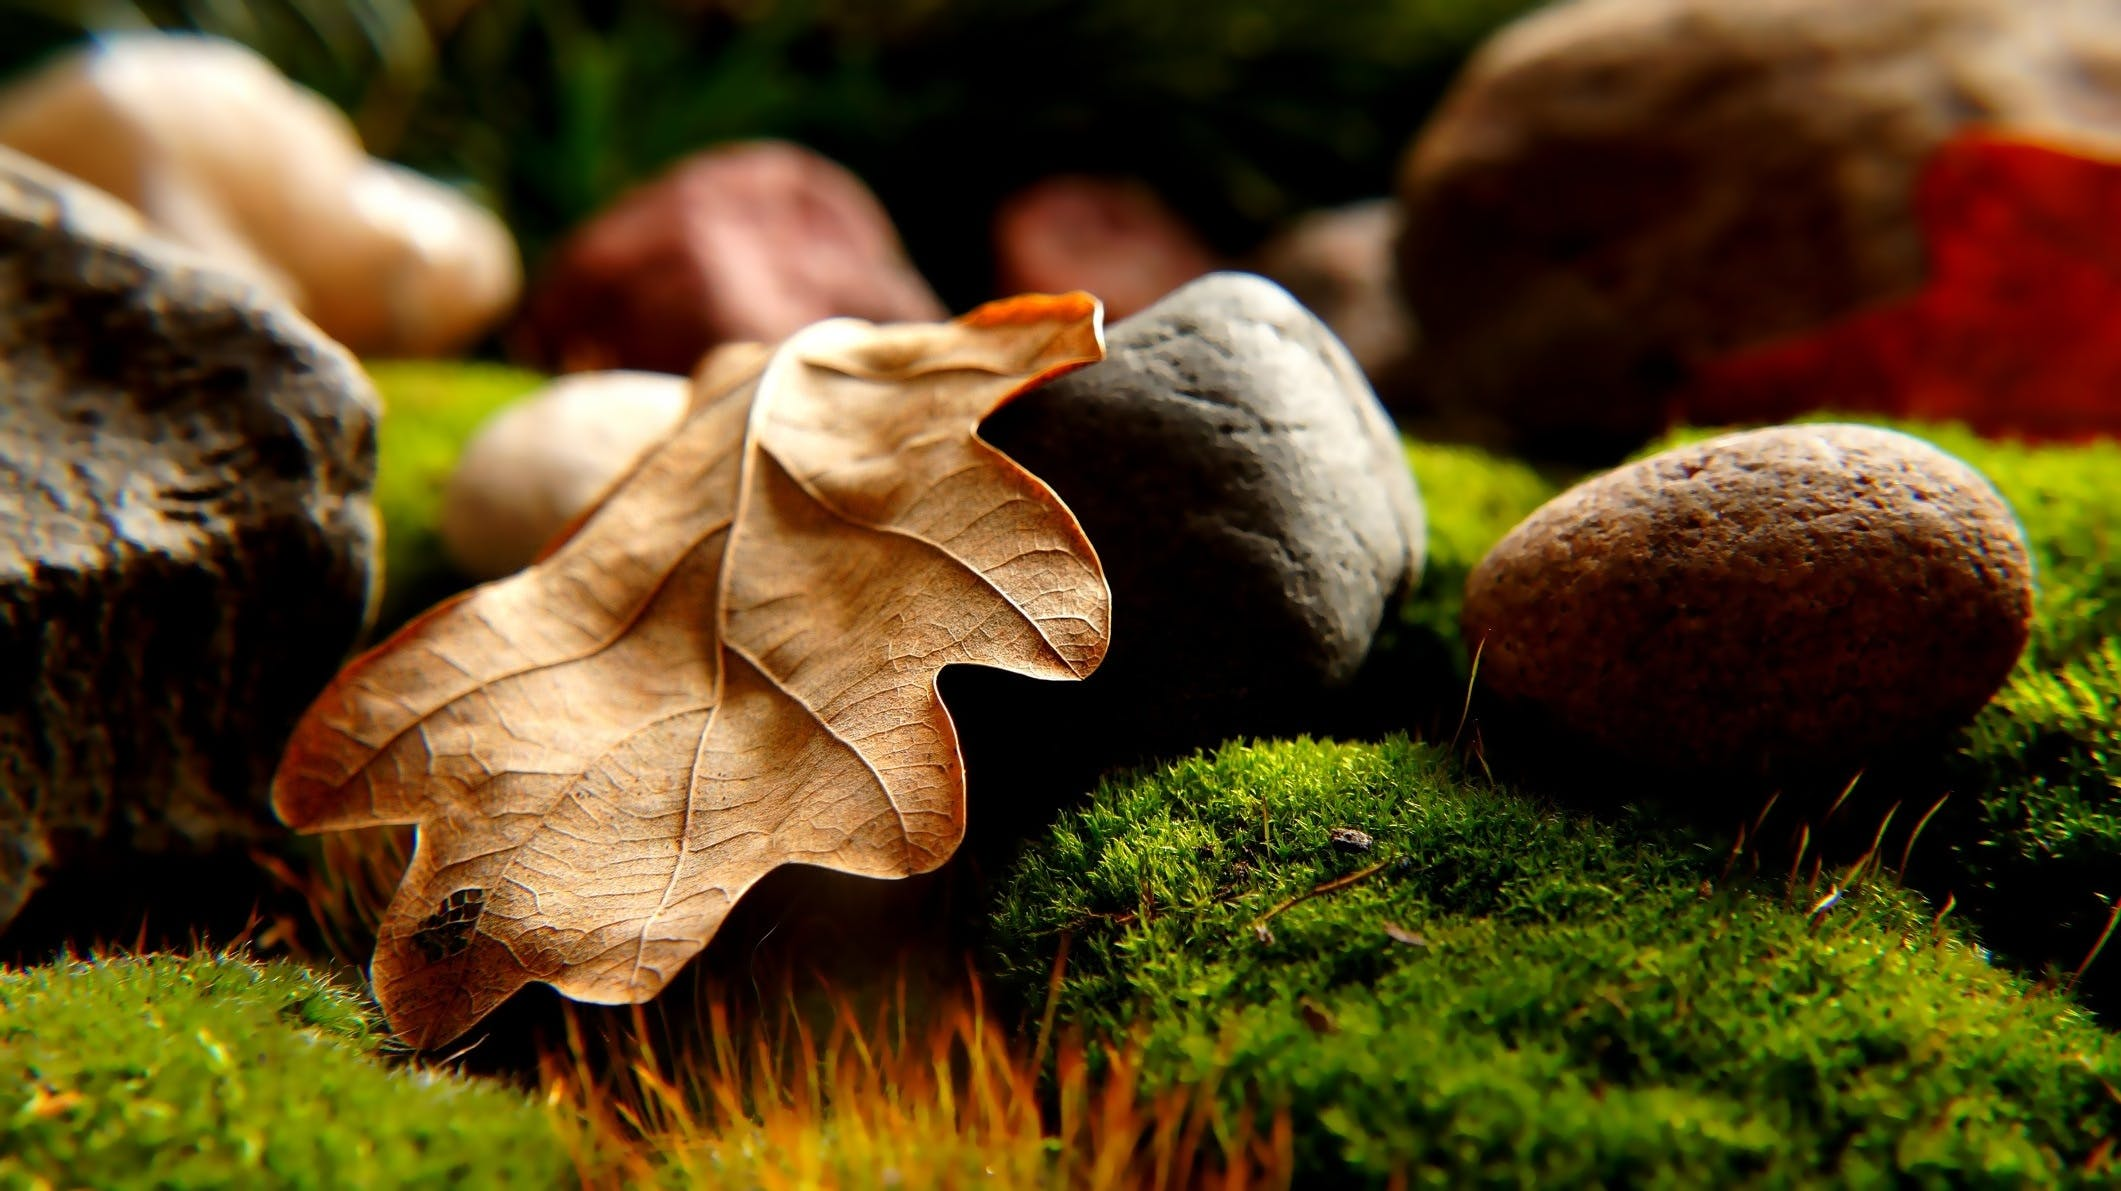 Leaf Surrounded by Rocks